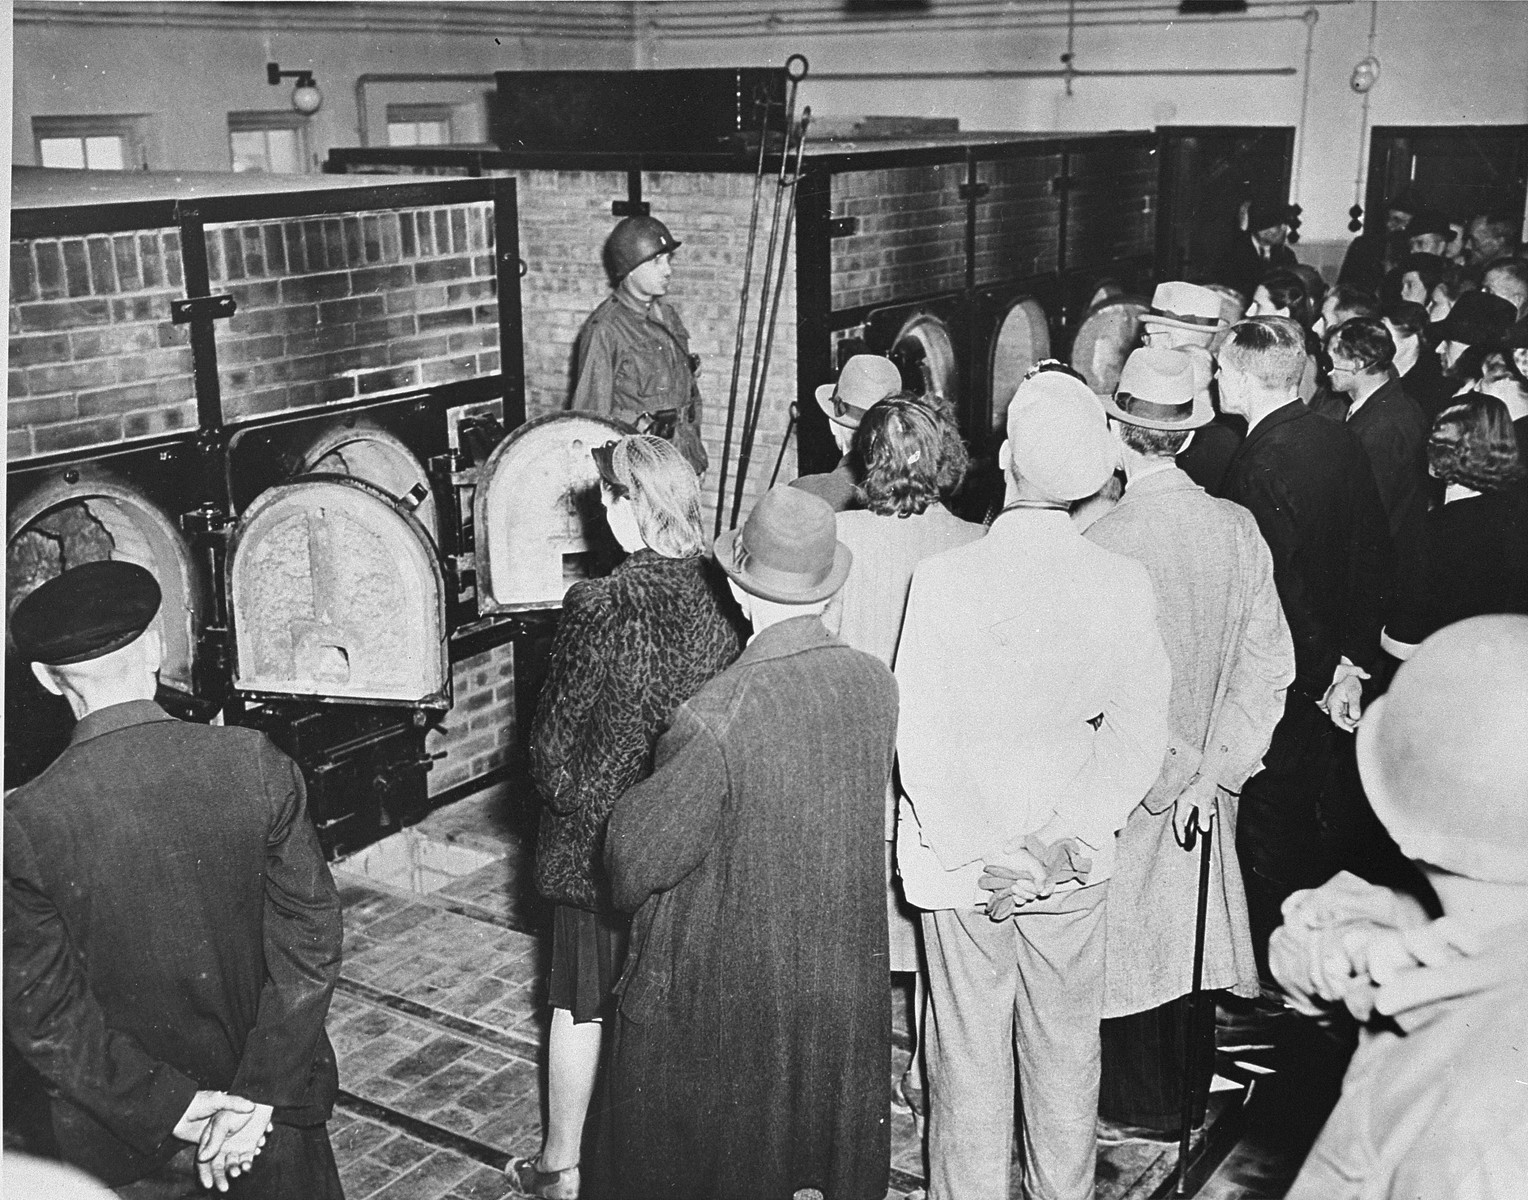 Civilians from nearby Weimar are forced by American soldiers to see the remains of prisoners in the crematorium ovens of Buchenwald during their tour of the concentration camp.